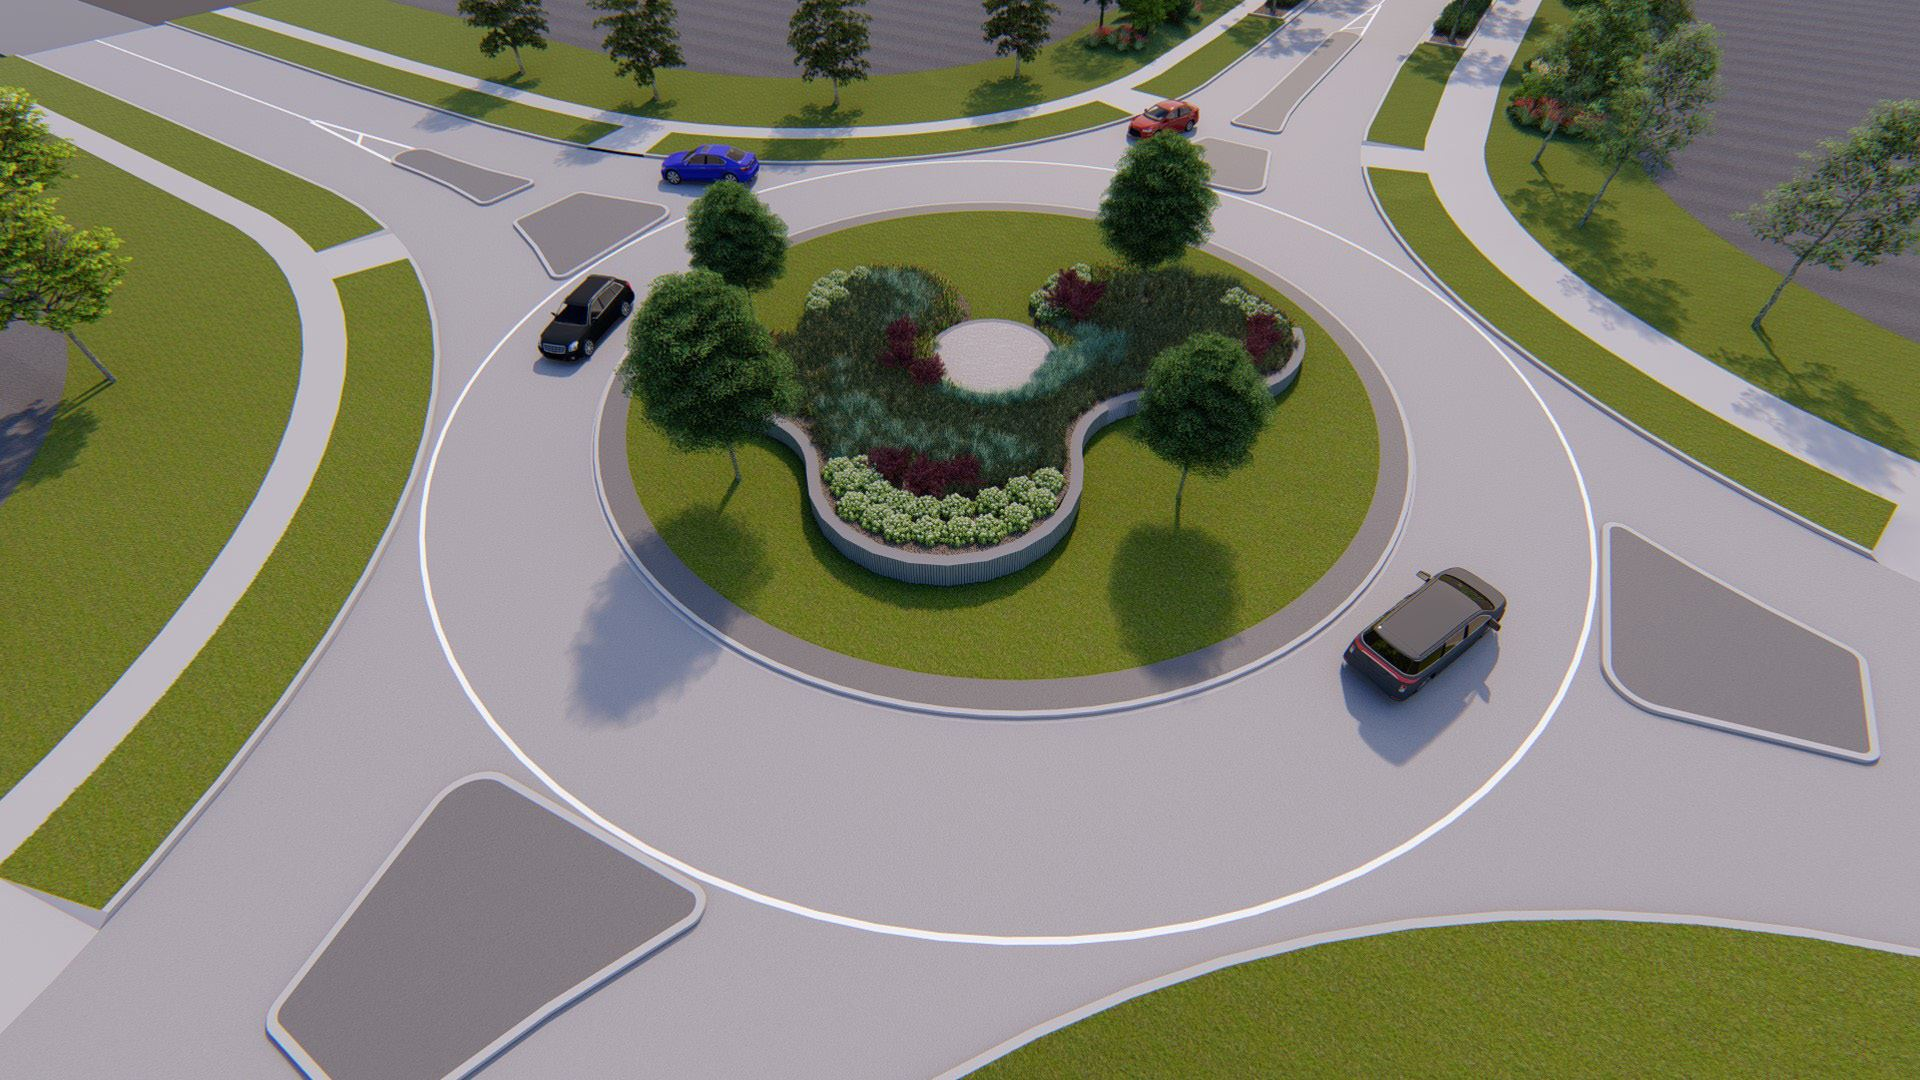 70th Street Roundabout